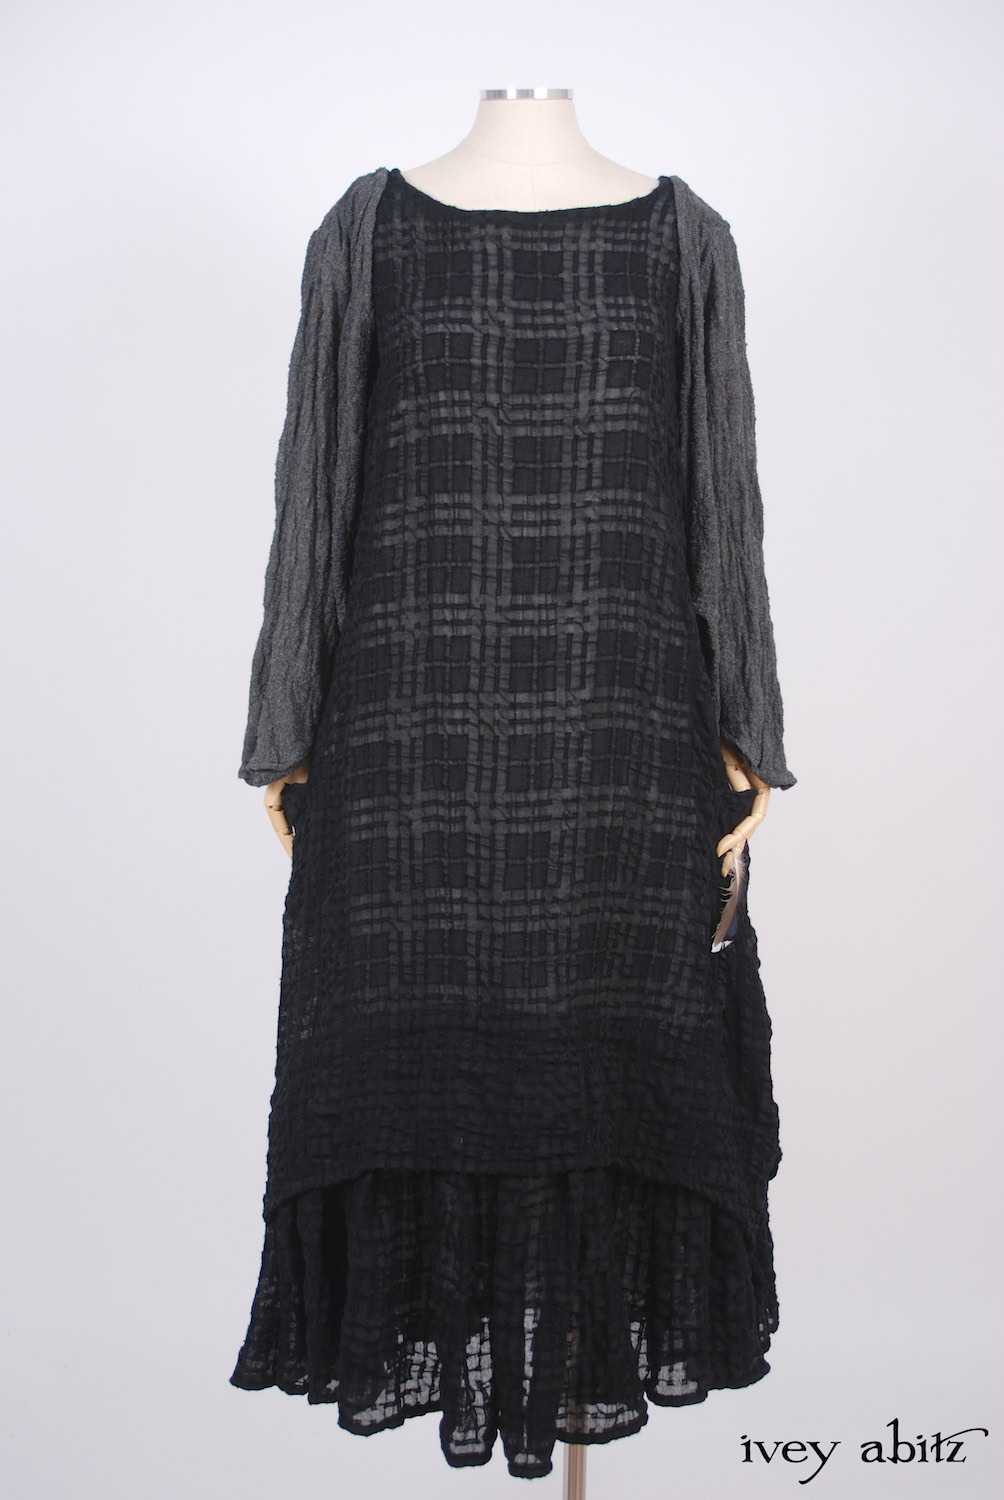 Ivey Abitz - Highbridge Duster Coat in Sparrow Grey Open Weave Knit  - Blanchefleur Frock in Blackbird Plaid Challis, High Water Length  - Cilla Slip Frock in Dove Striped Voile, High Water Length